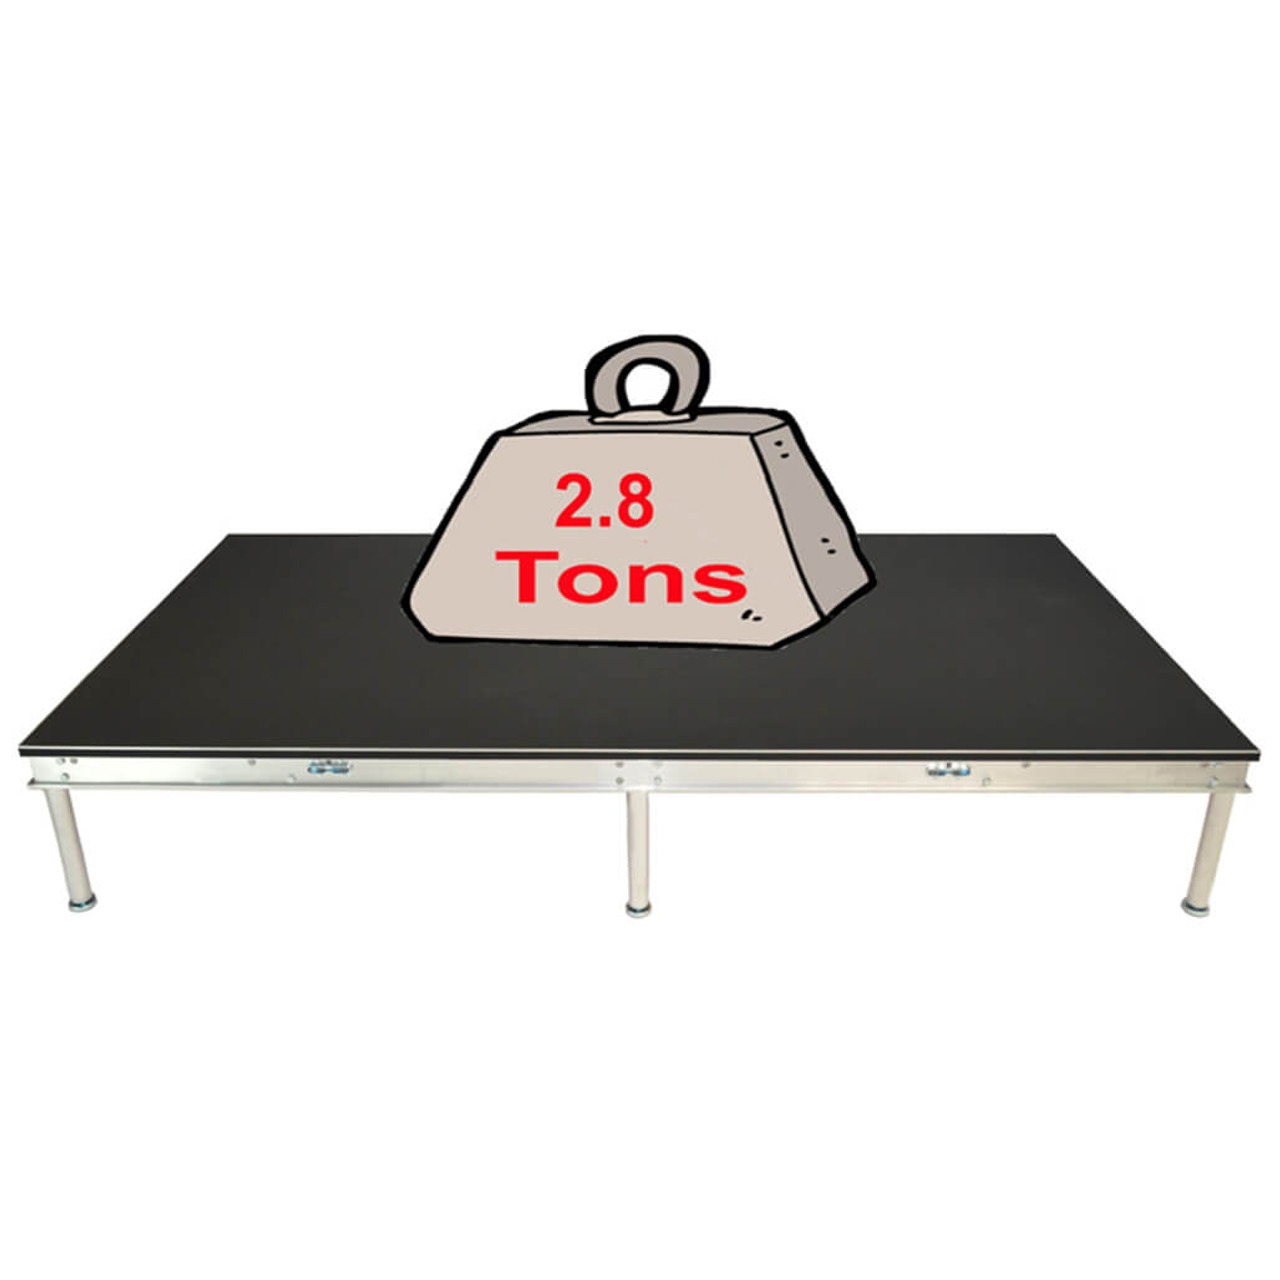 Top rated Quik Stage 8' x 20' High Portable Stage Package with Black Polyvinyl Non-Skid Surface. Additional Heights and Surfaces Available - Holds 2.8 tons per 4 x 8 when spread out evenly